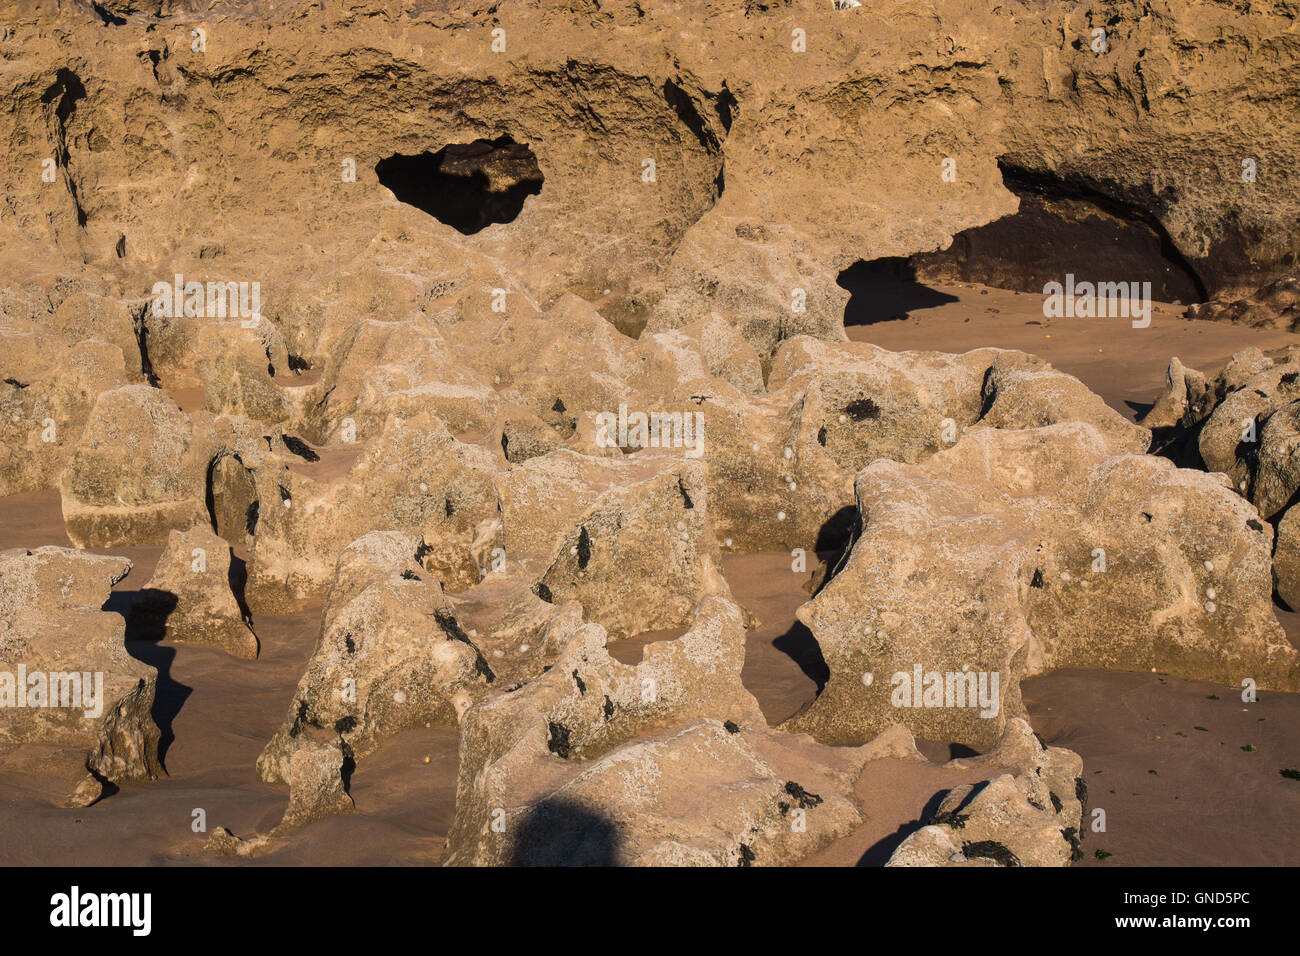 Rocks with sharp edges and holes on the beach of Atlantic Ocean in Morocco during the low tide. - Stock Image